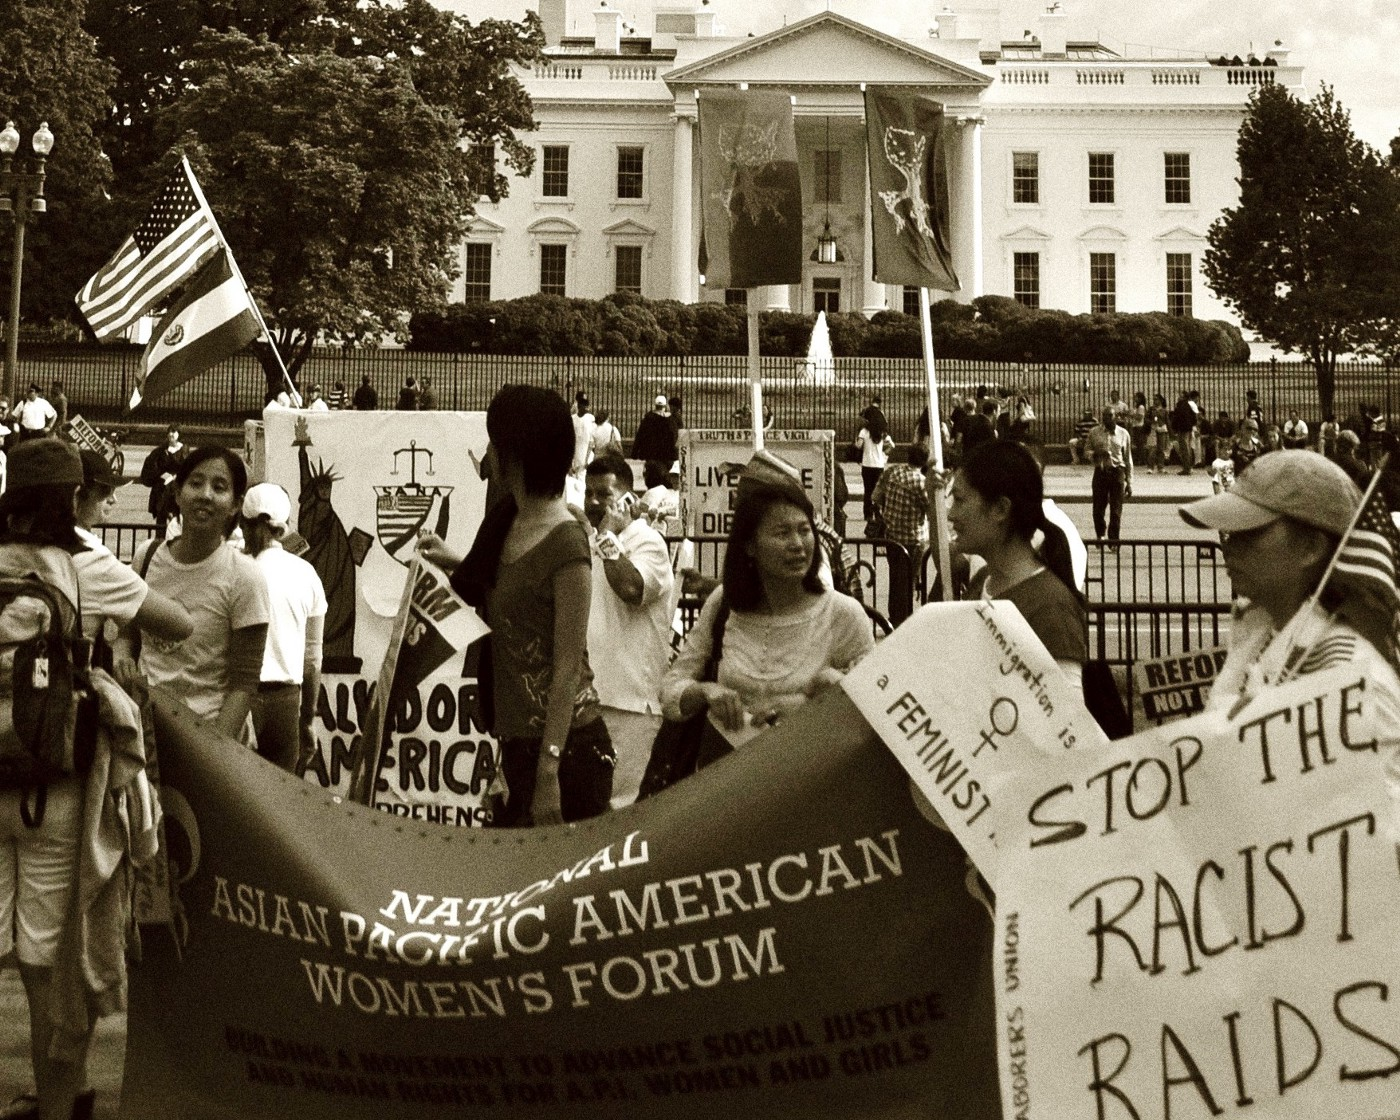 NAPAWF DC chapter holds a banner in protest of deportation raids in front of the White House in 2009.